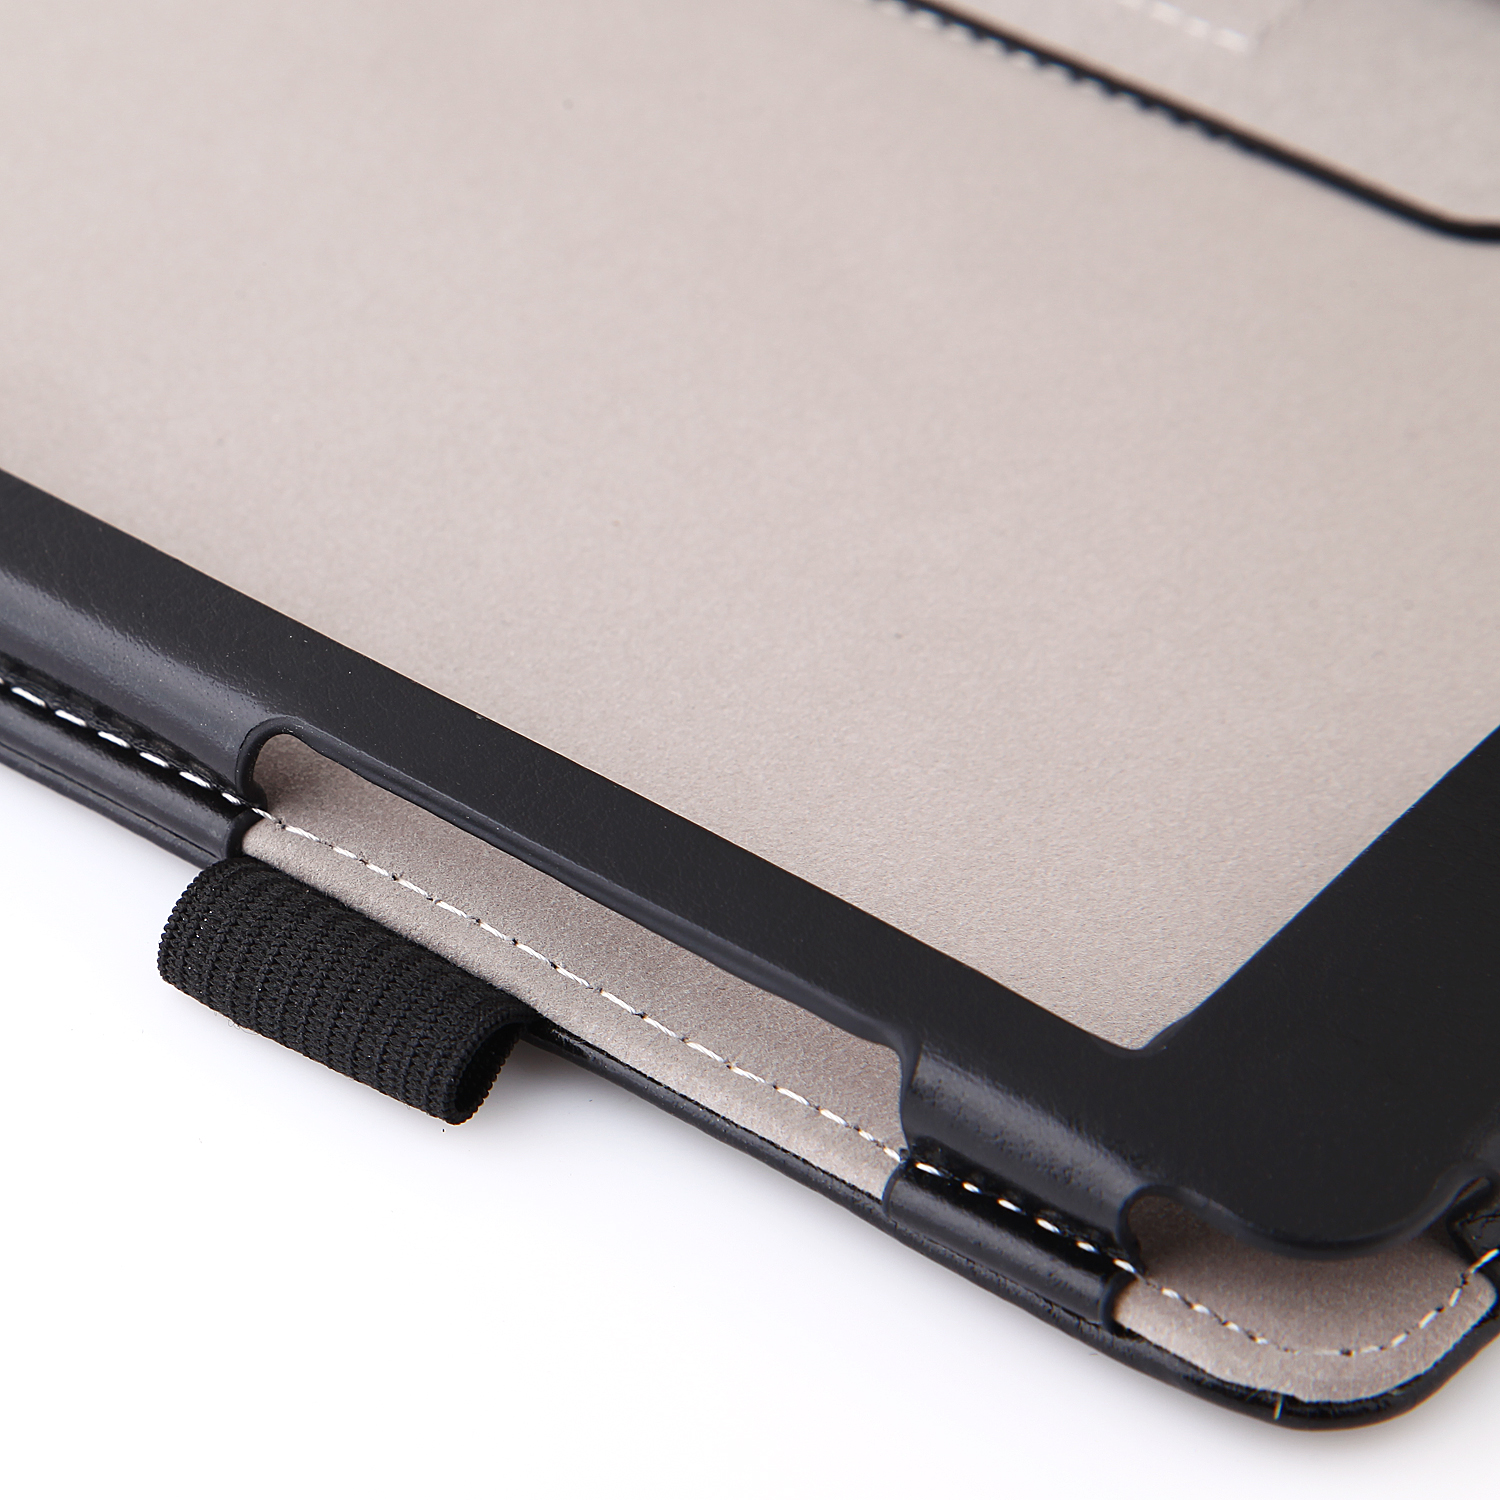 Protective PU Leather Stand Case Cover for the Mi Pad - Black